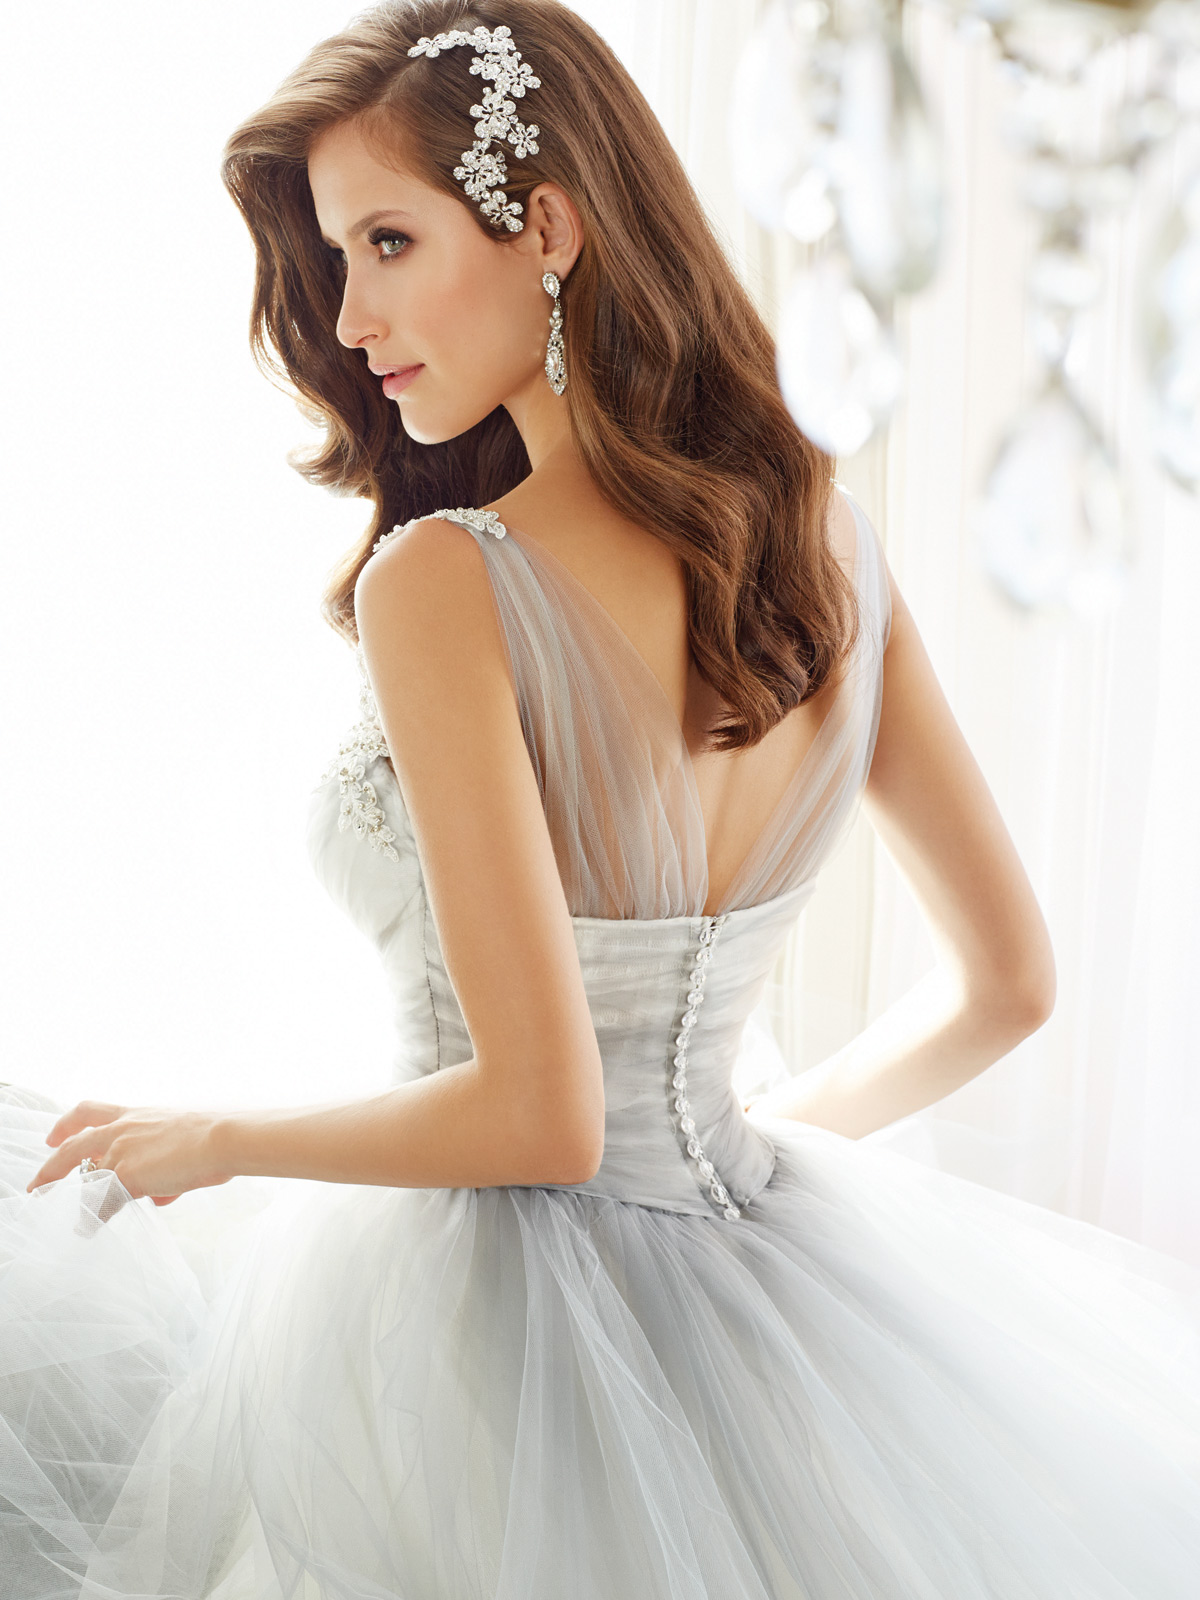 bc328acf212 Bridal Collection - Sophia Tolli by Mon Cheri Bridals